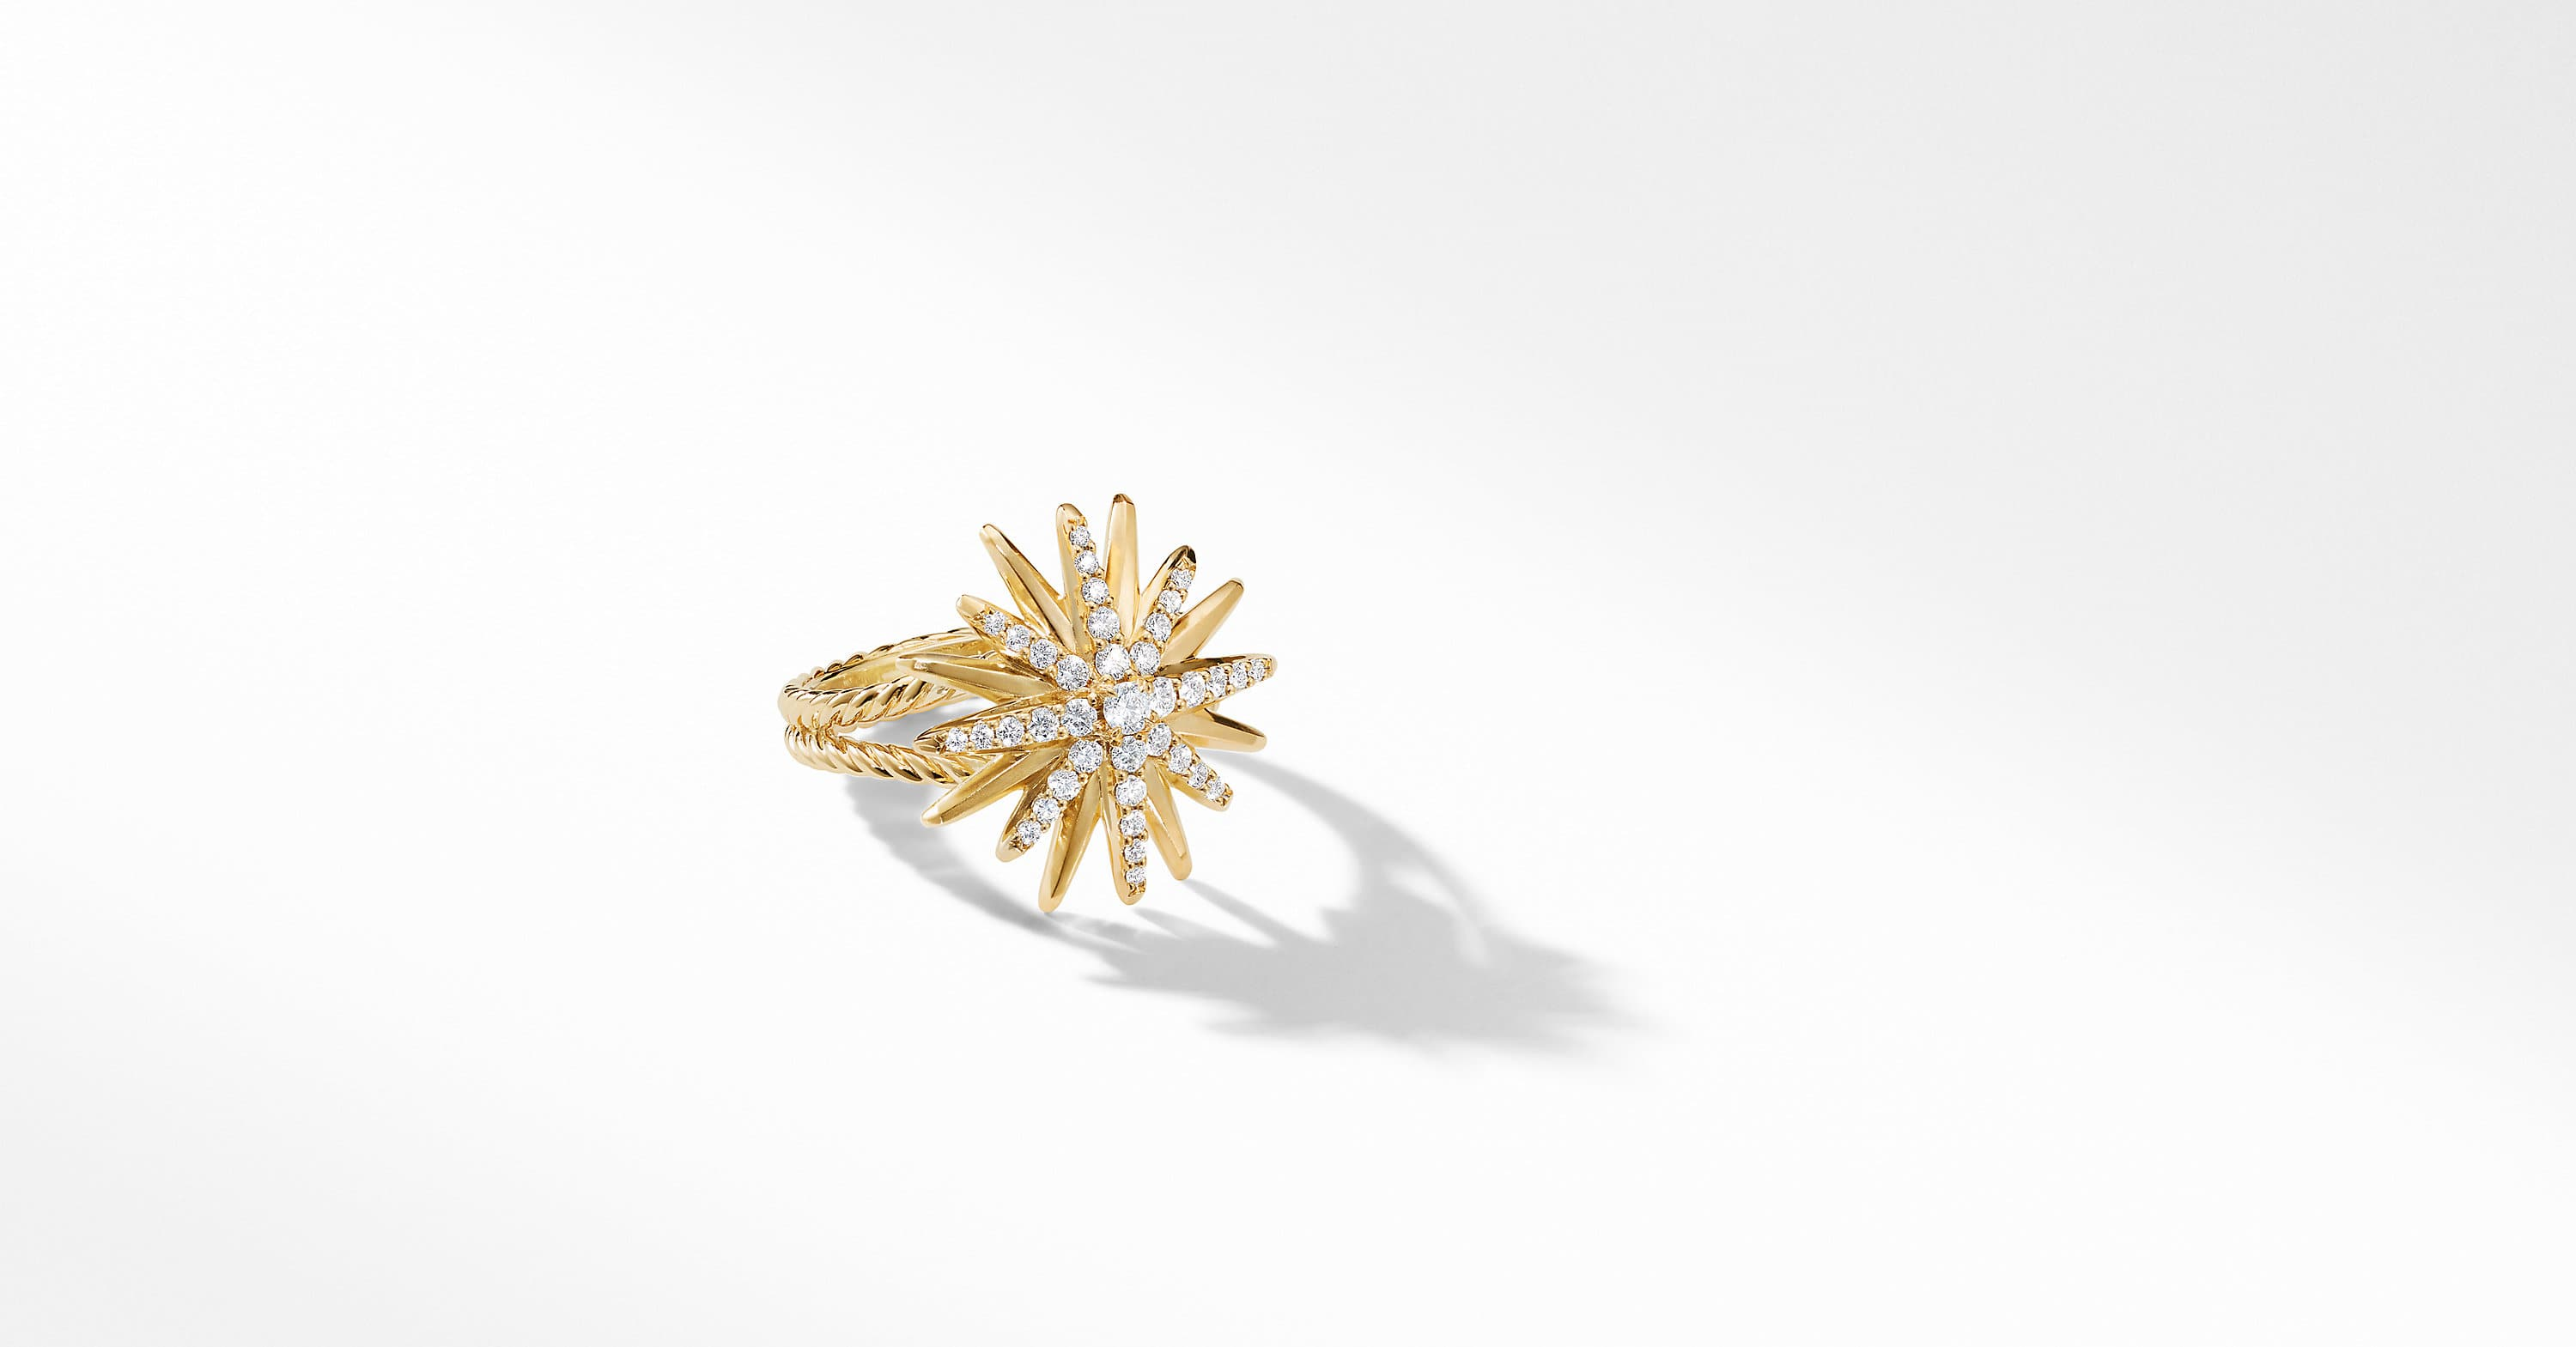 Starburst Ring in 18K Yellow Gold with Diamonds, 19mm